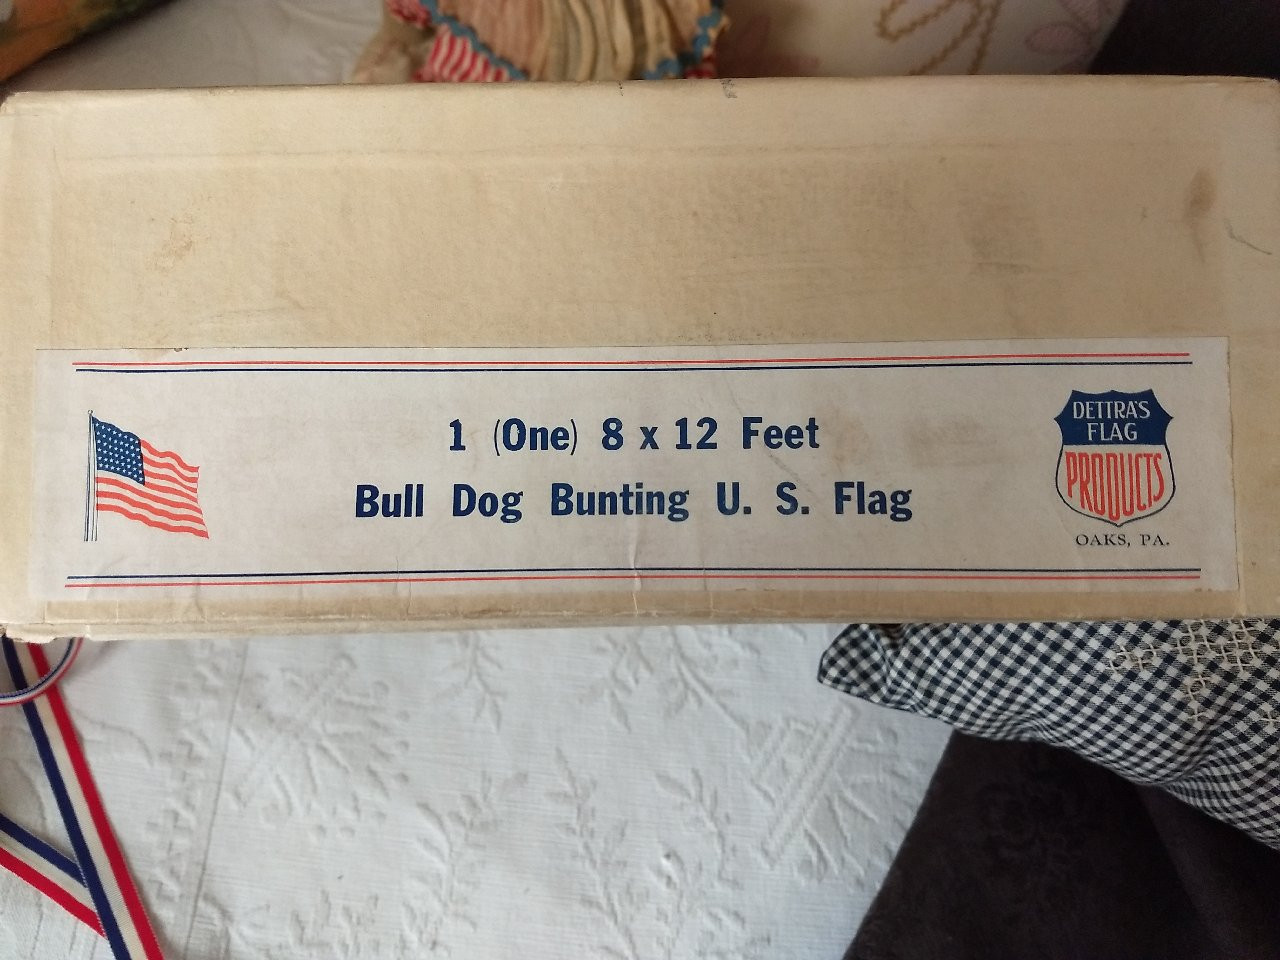 Vintage 1940 Bull Dog Bunting US Flag Box Only Patriotic Advertising